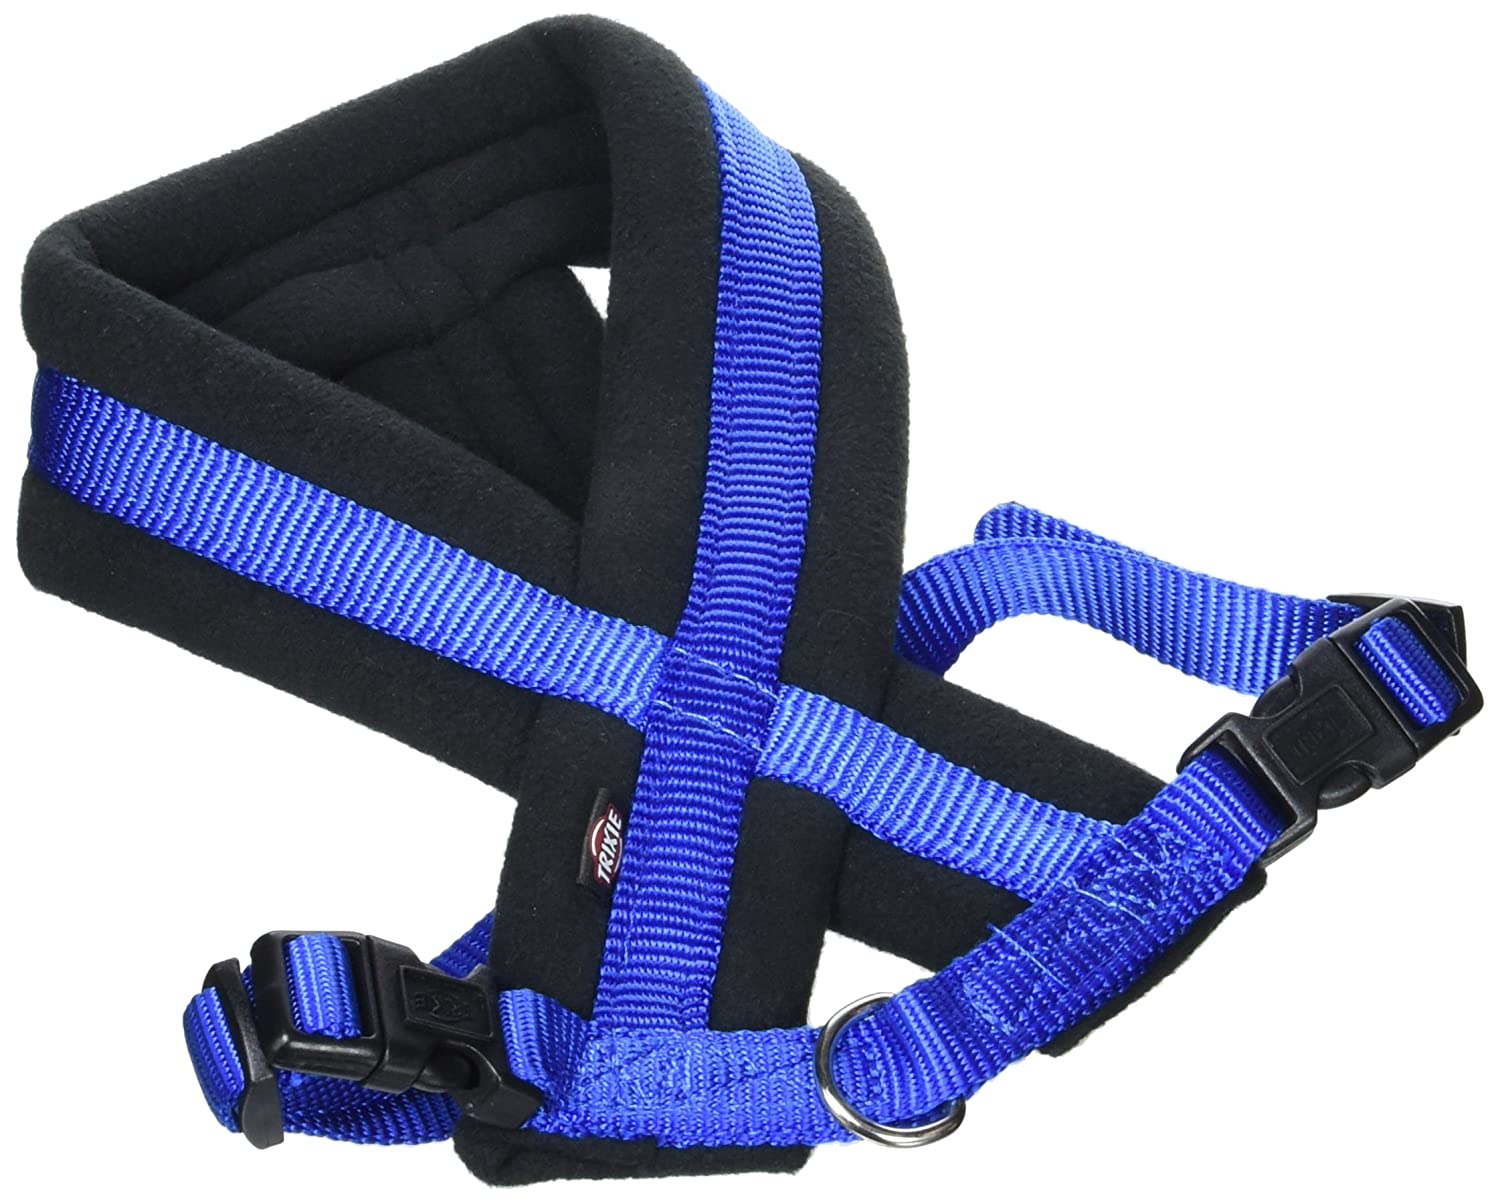 Trixie Premium Harness with Fleece Padding, S to M, 40-60 cm x 25 mm, bluee